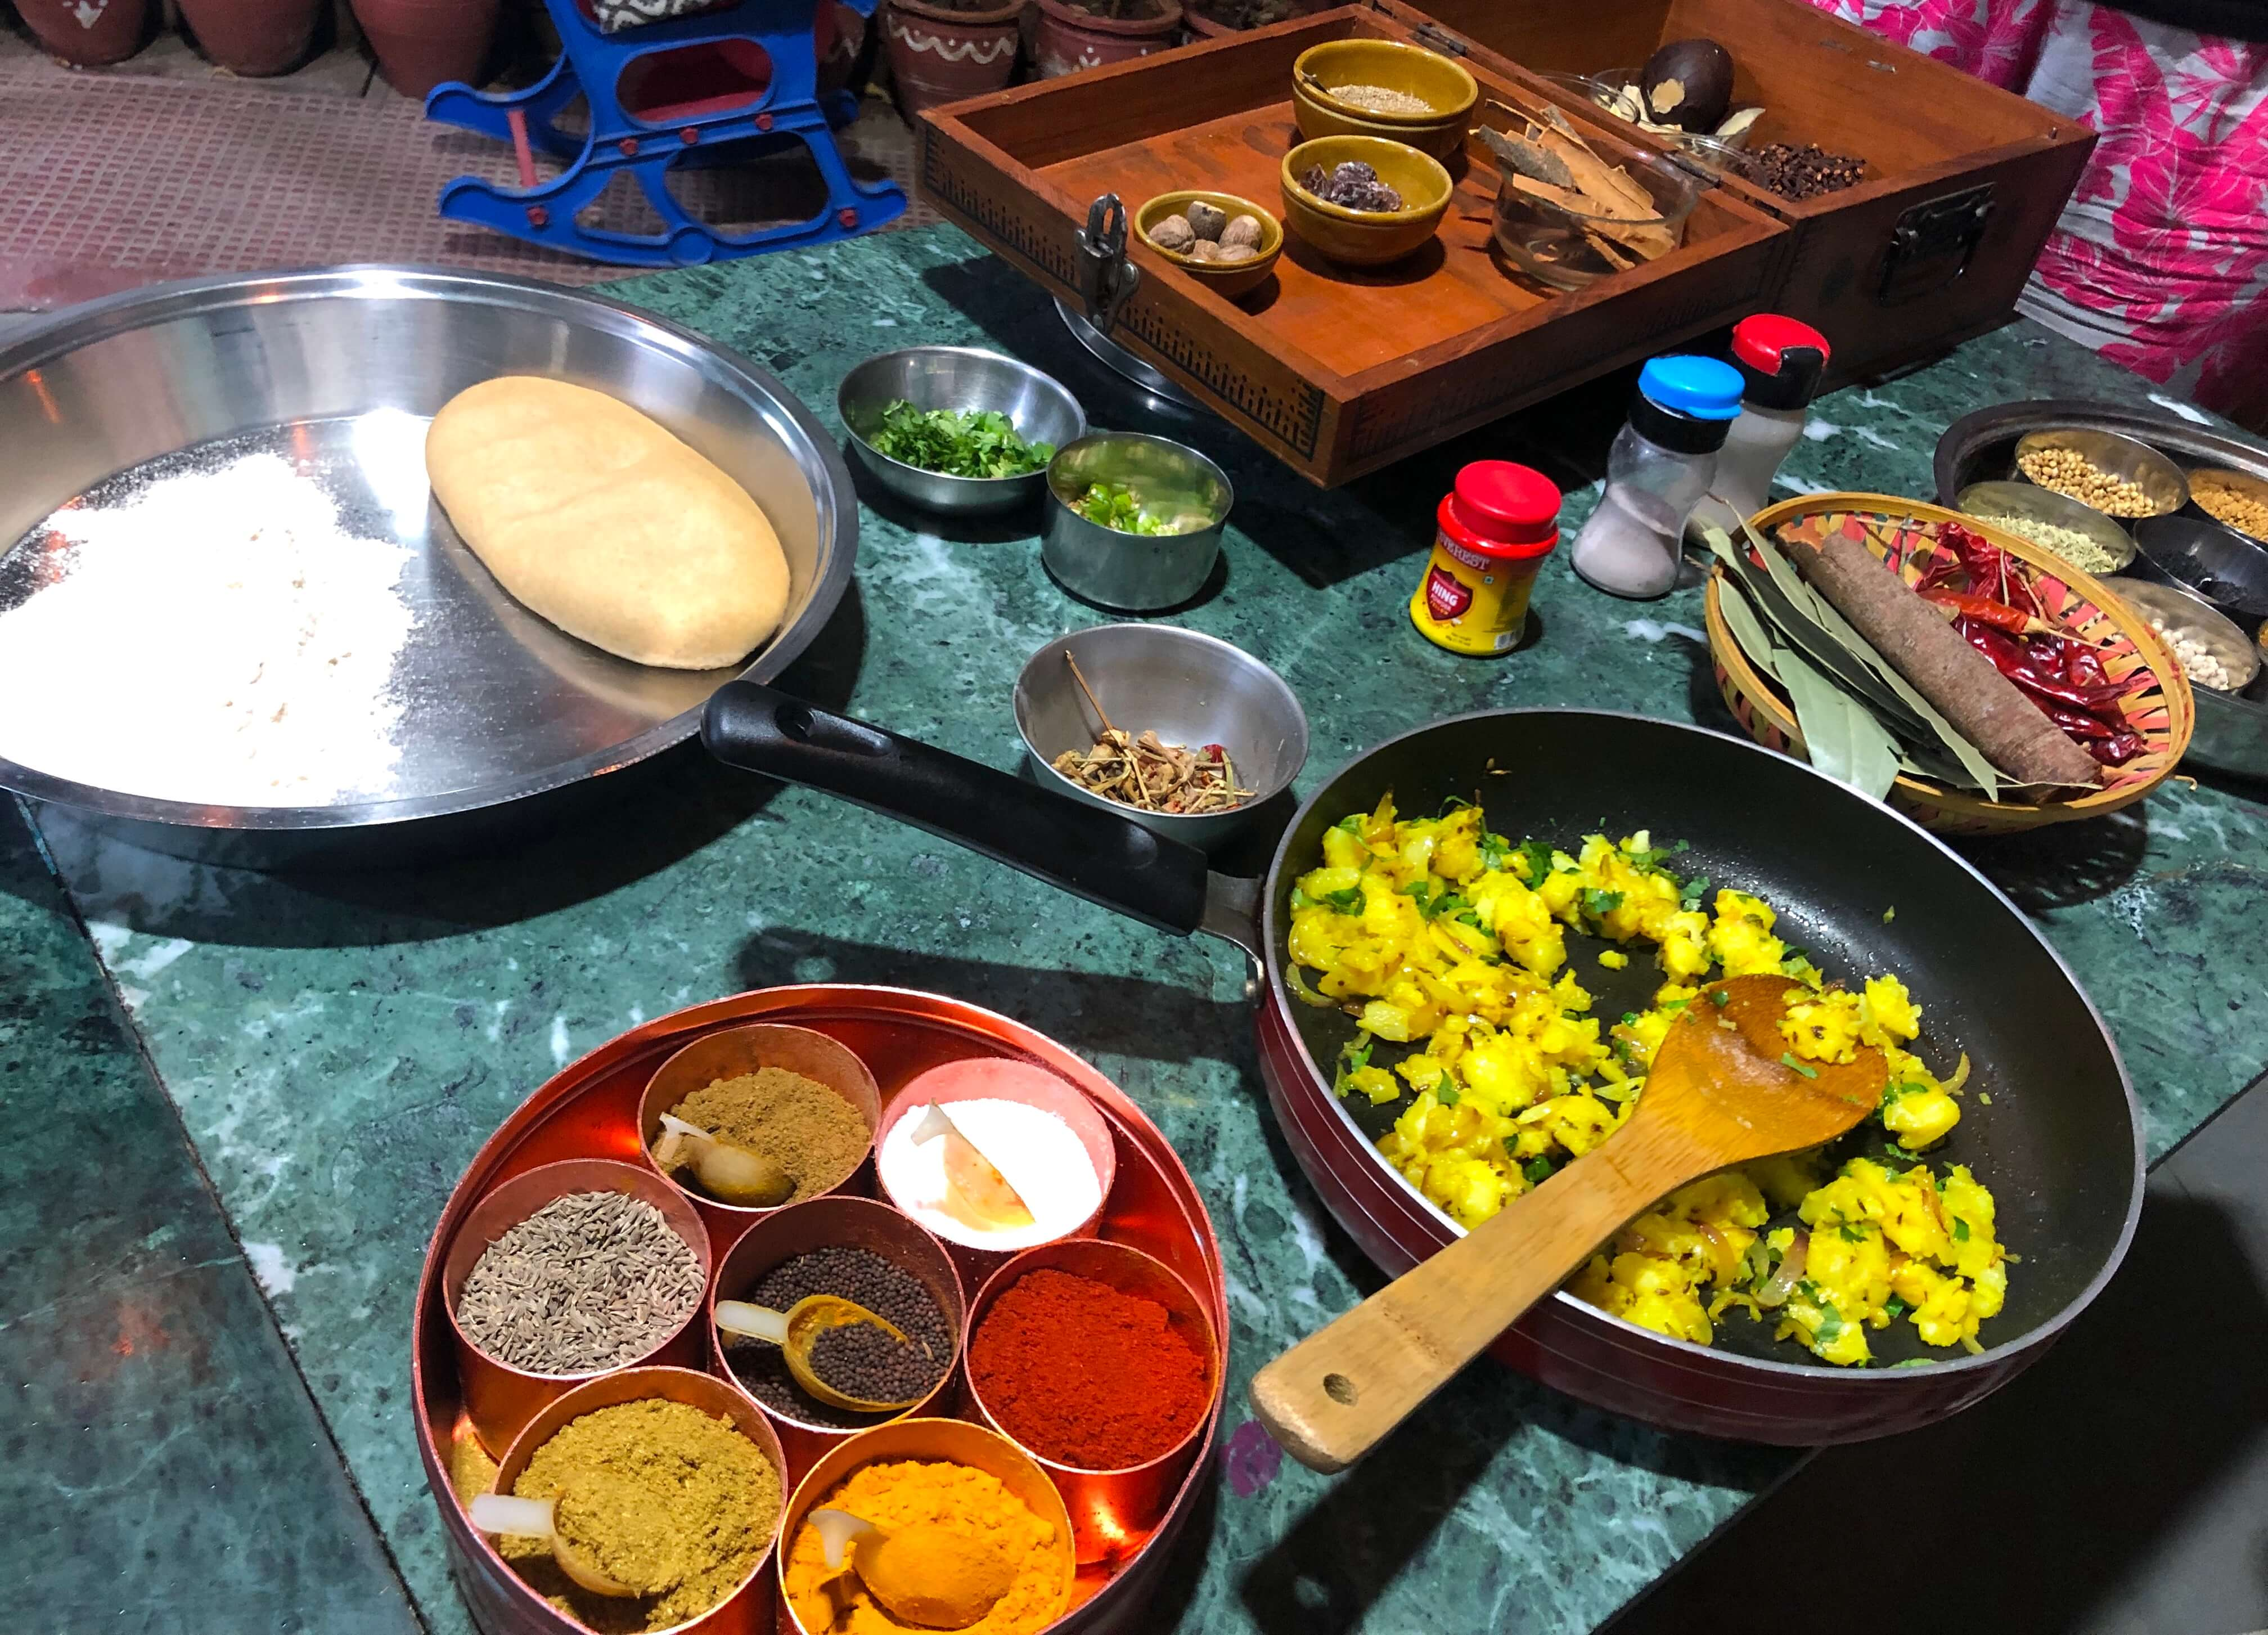 Cuisine India Foods To Try In India 9 Dishes You Need To Taste In The Golden